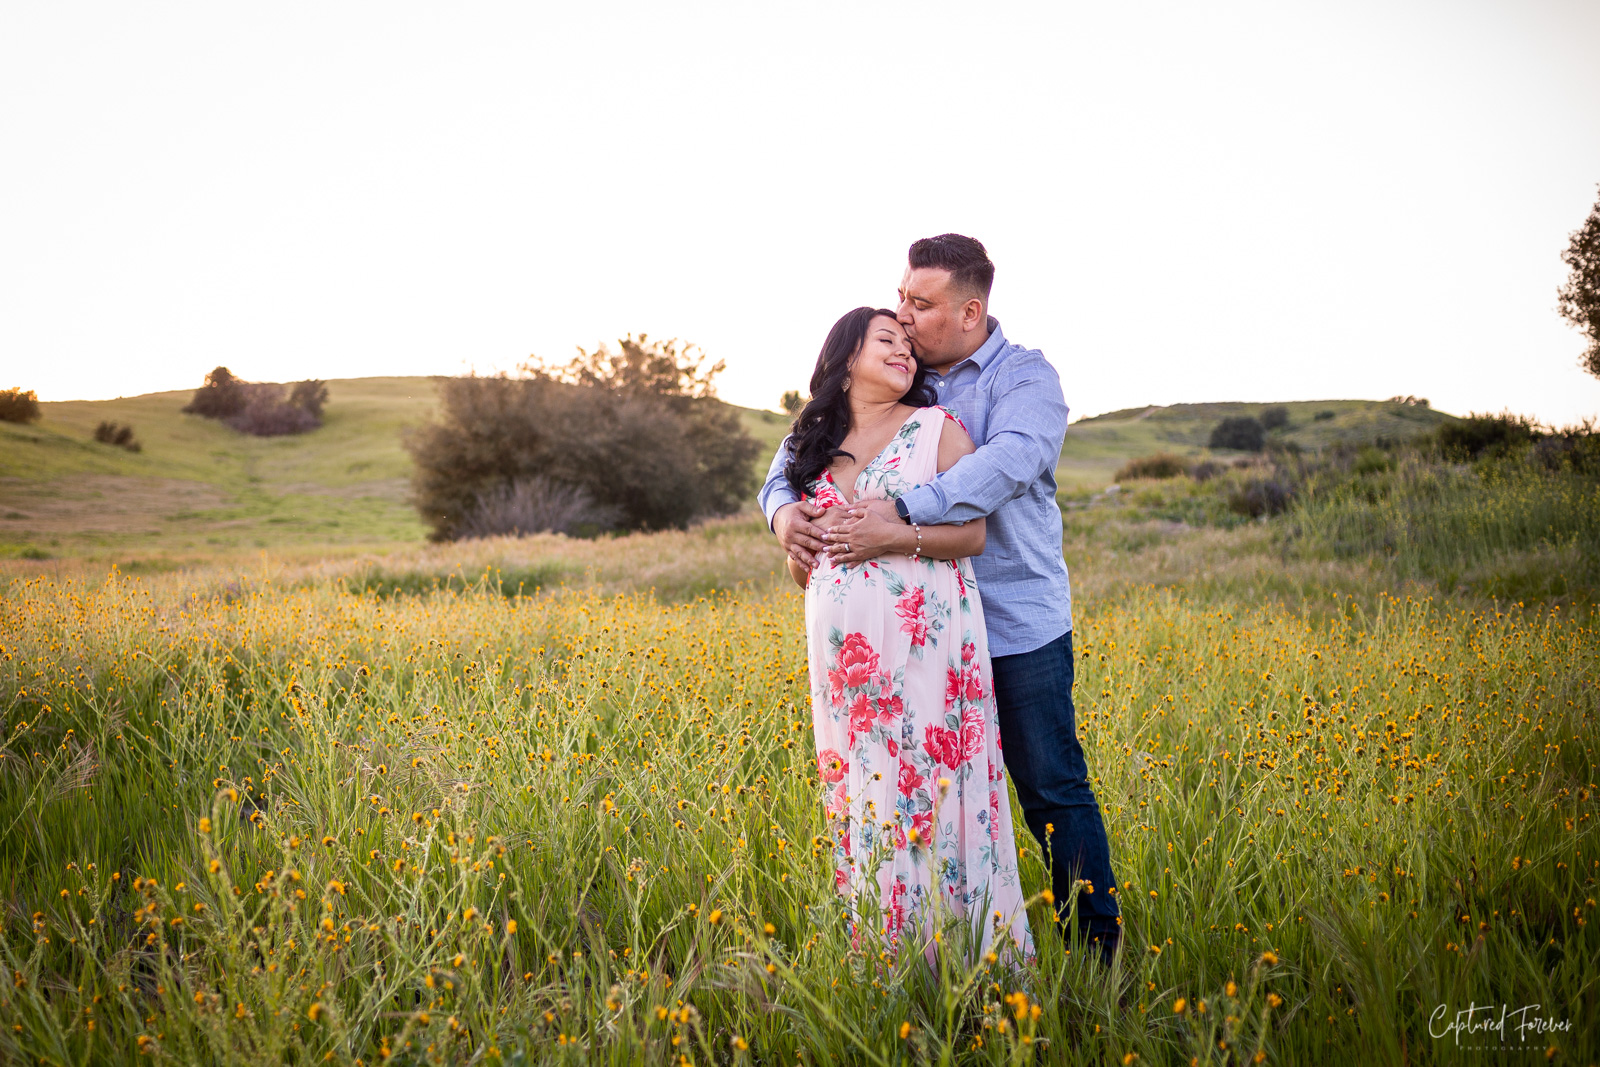 Captured-forever-photography_ladera-ranch-maternity-photographer (43 of 51).jpg